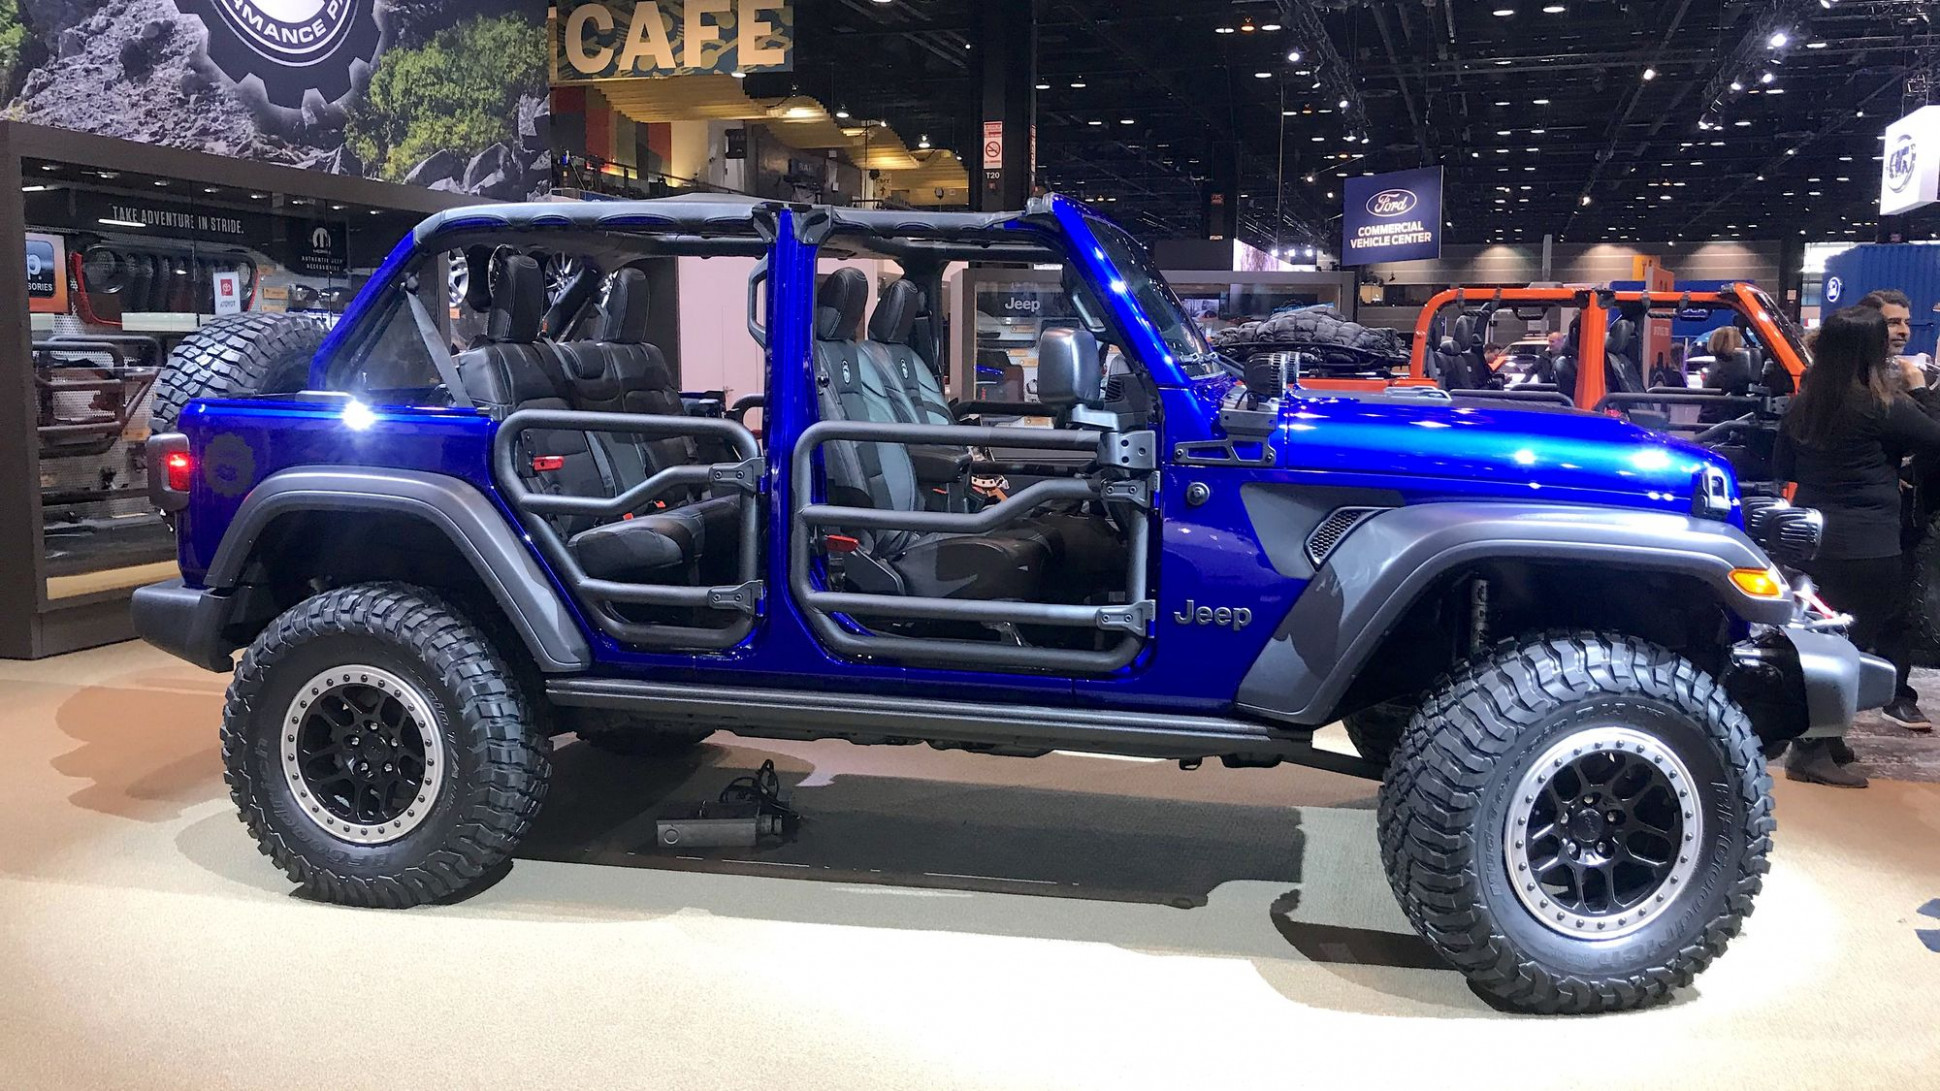 Exterior and Interior 2022 Jeep Wrangler Unlimited